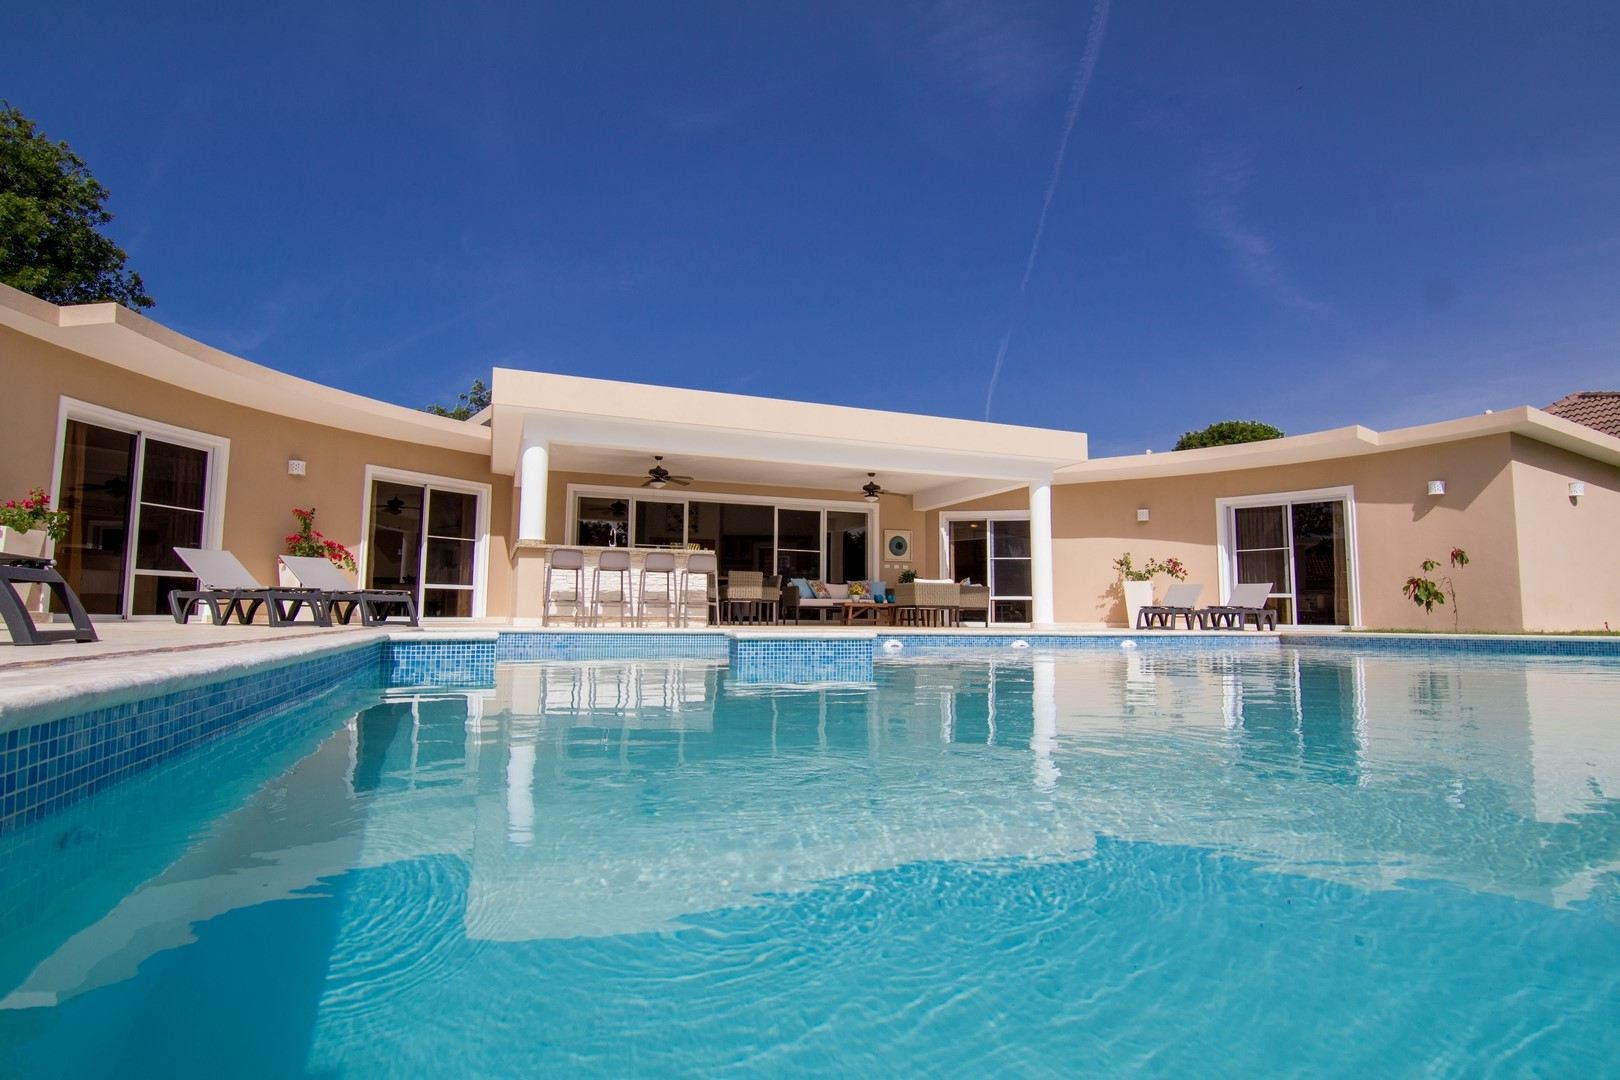 4 Bedrooms Vacation Villa in Sosua